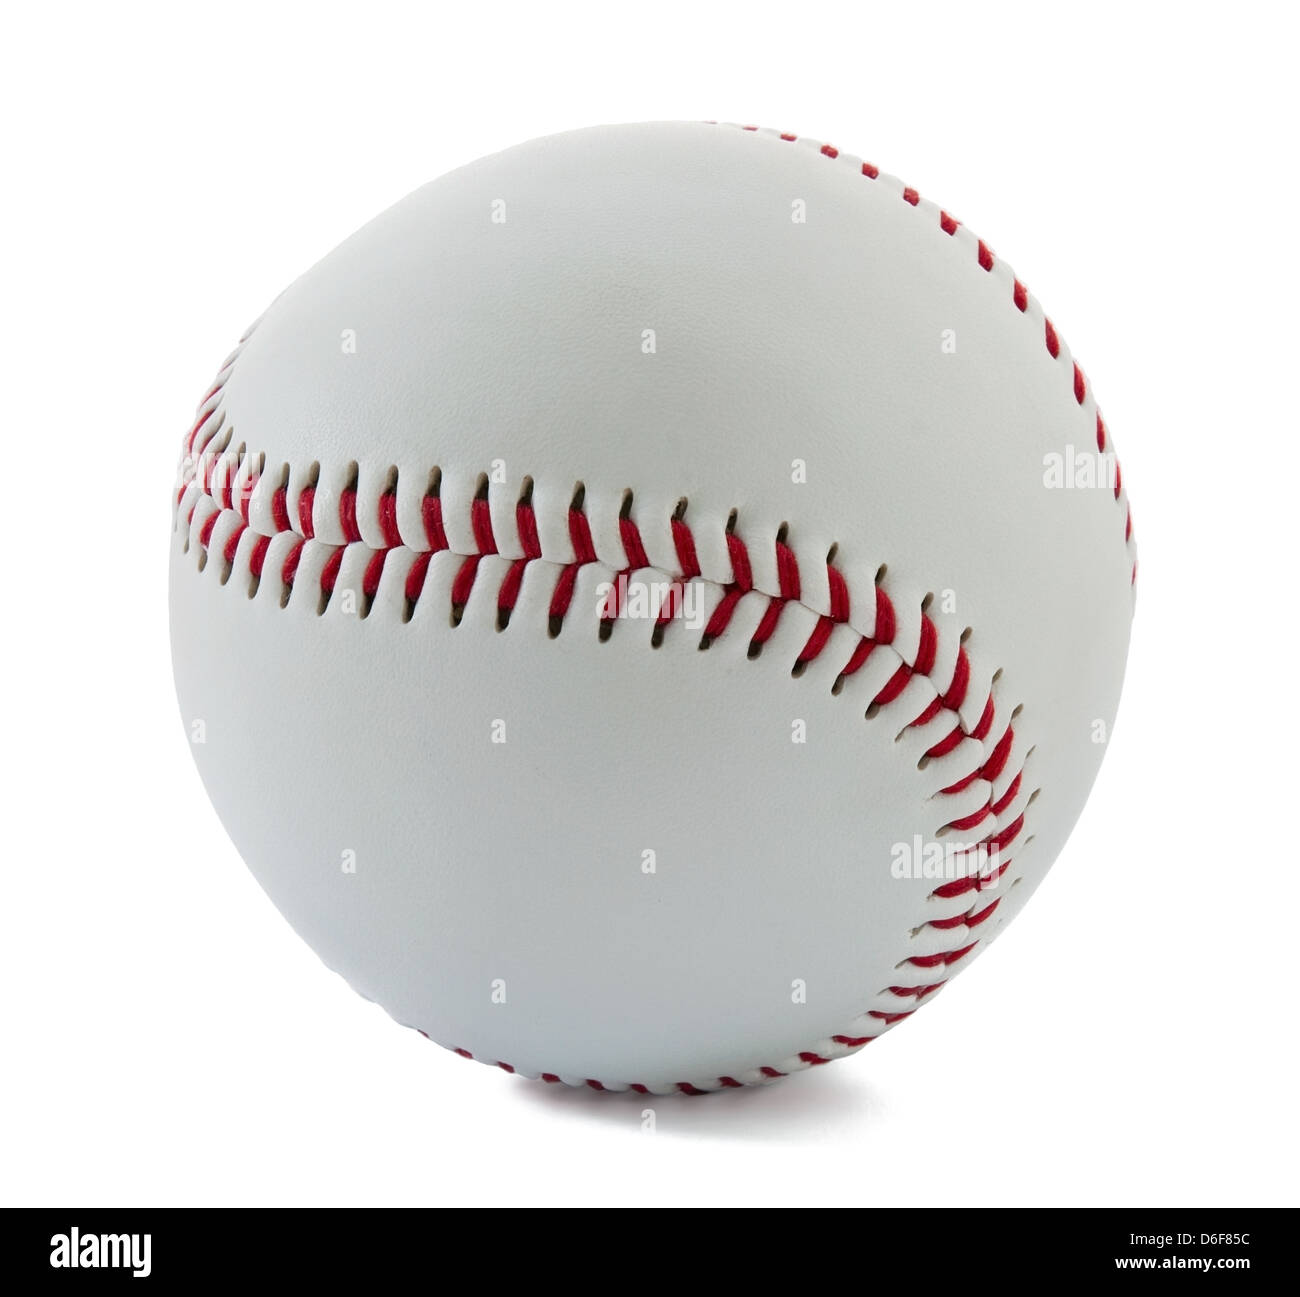 Balle de baseball sur le fond blanc Photo Stock